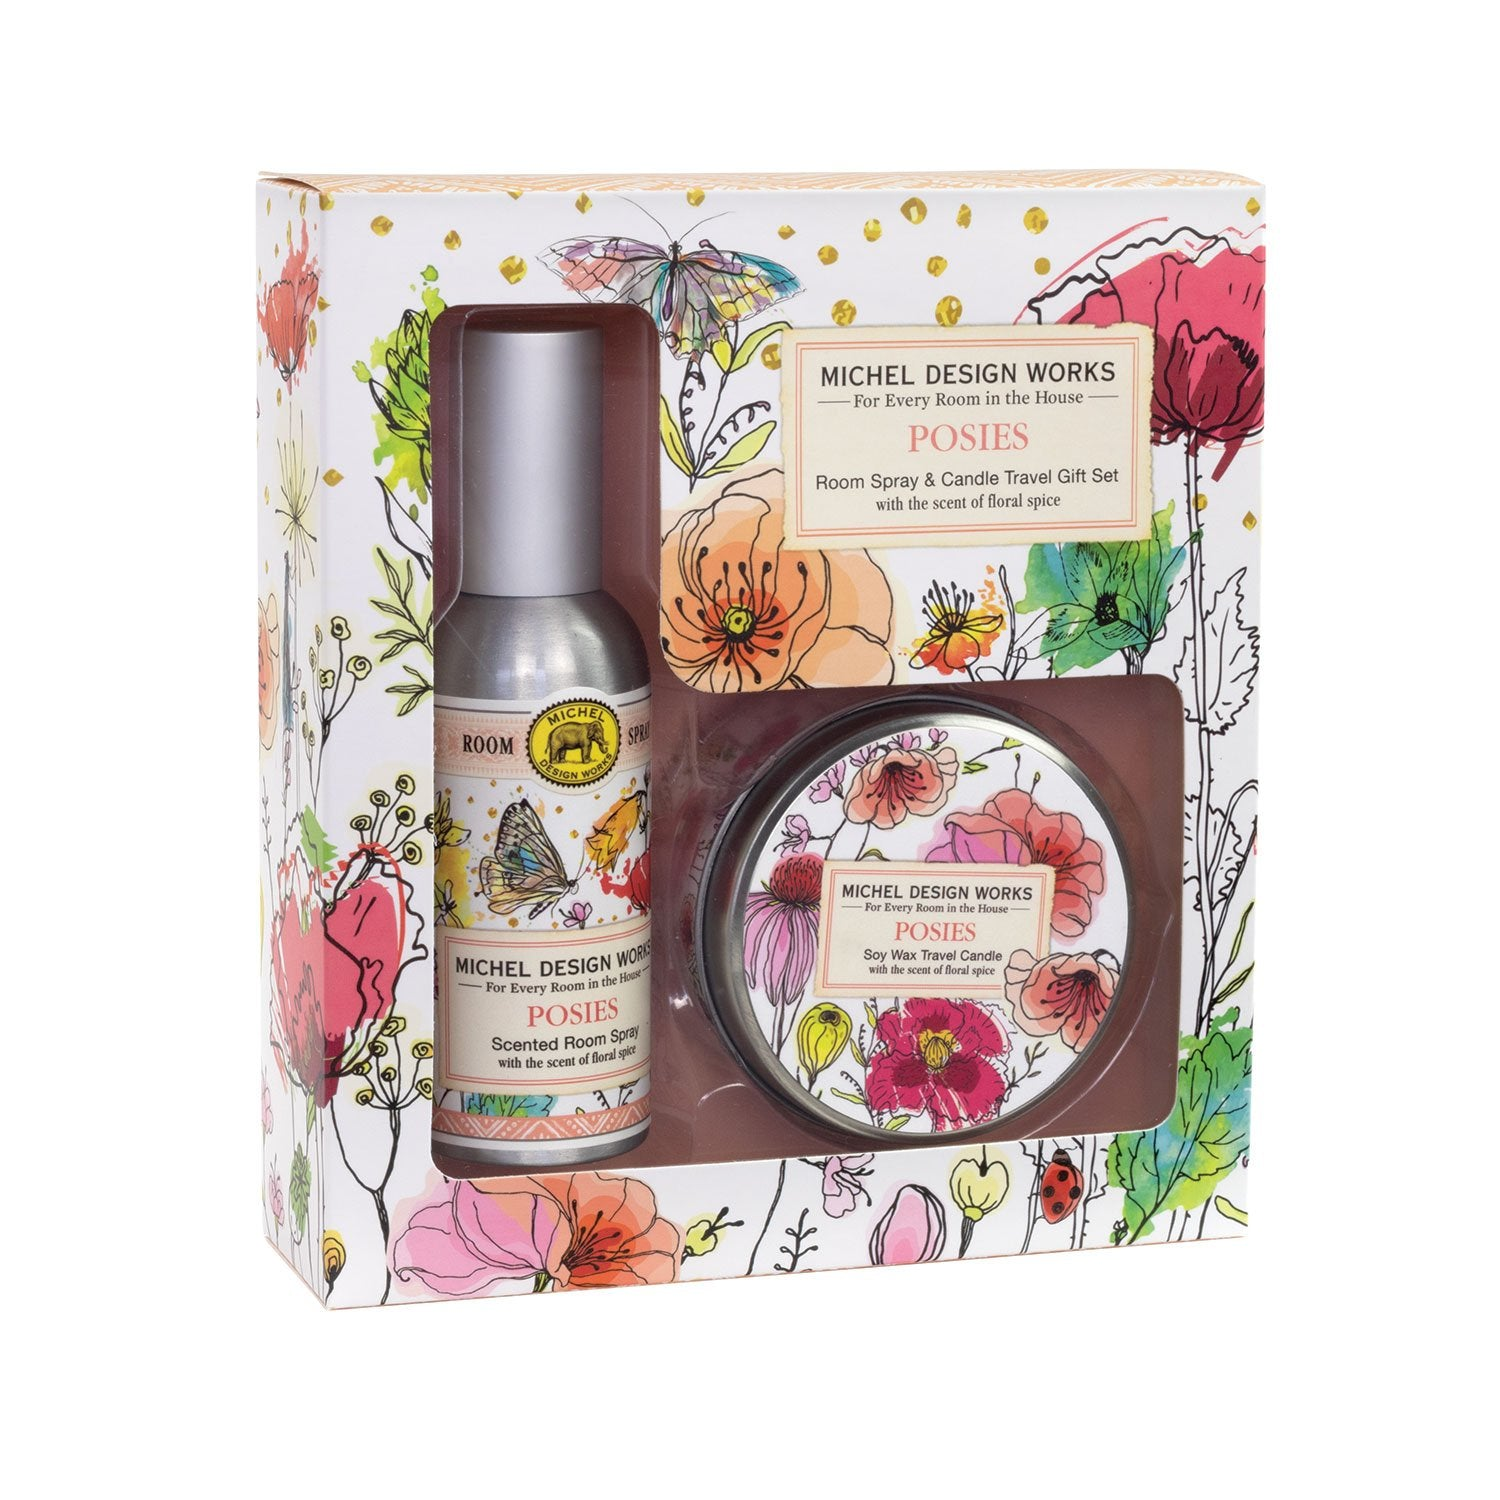 Posies Room Spray and Candle Travel Gift Set